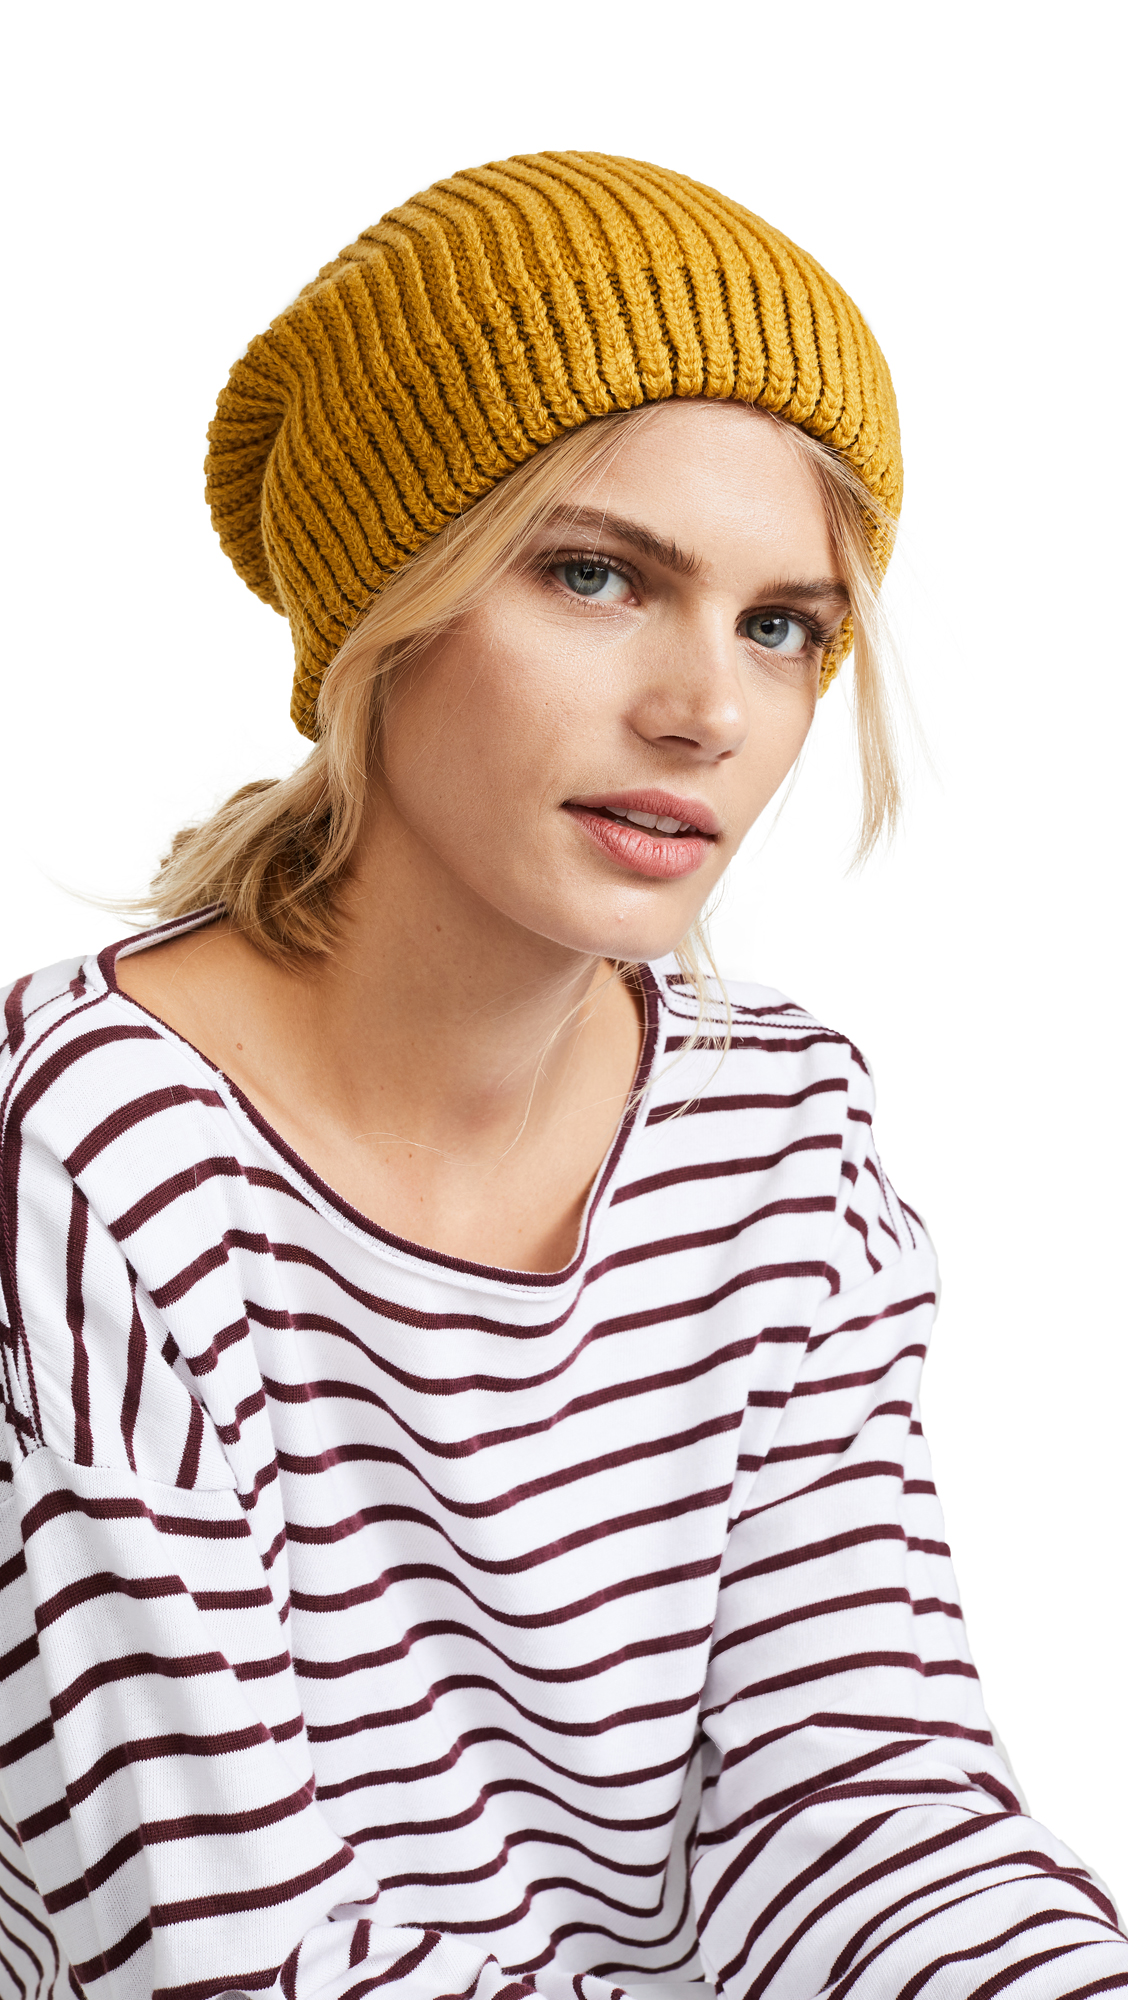 Free People All Day Everyday Slouchy Beanie Hat - Gold